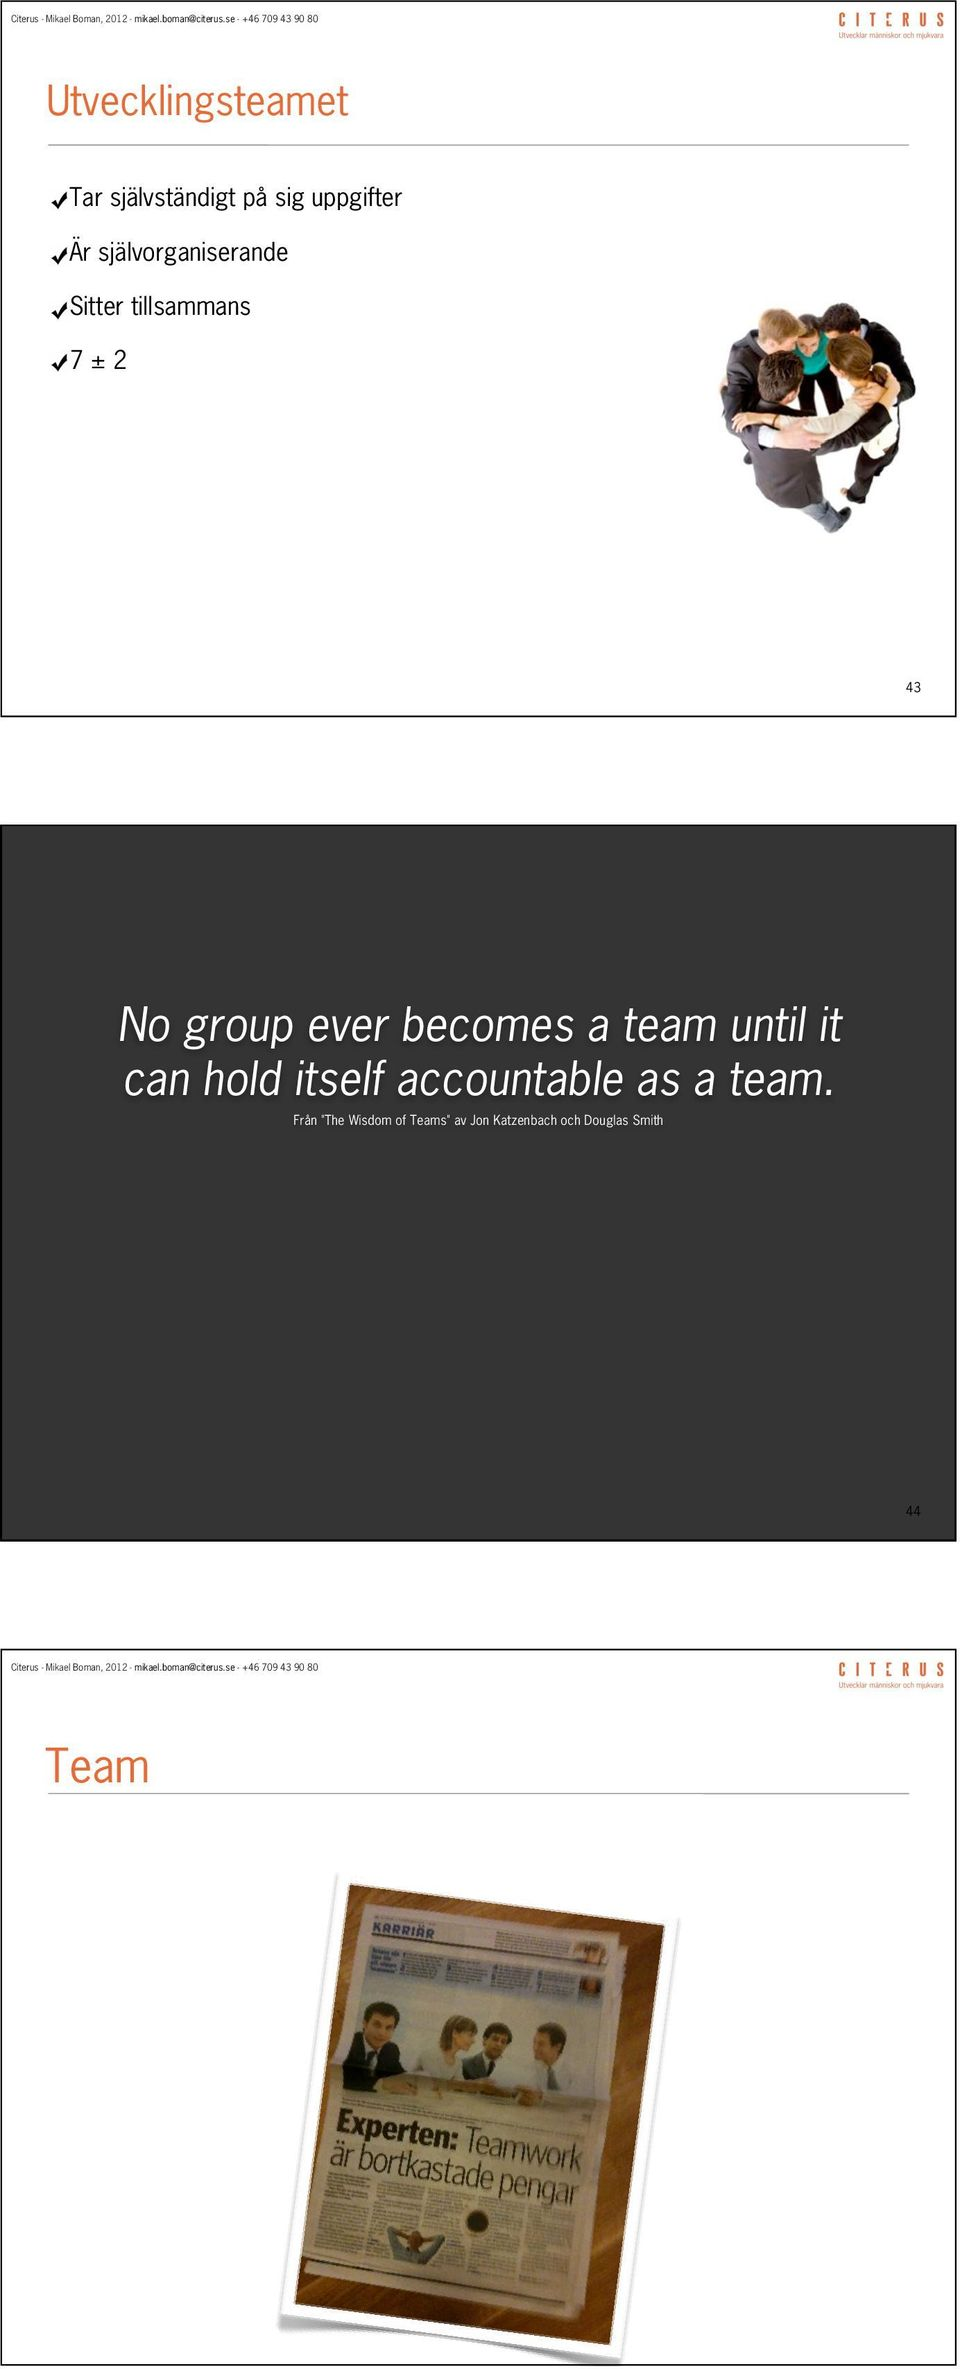 becomes a team until it can hold itself accountable as a team.